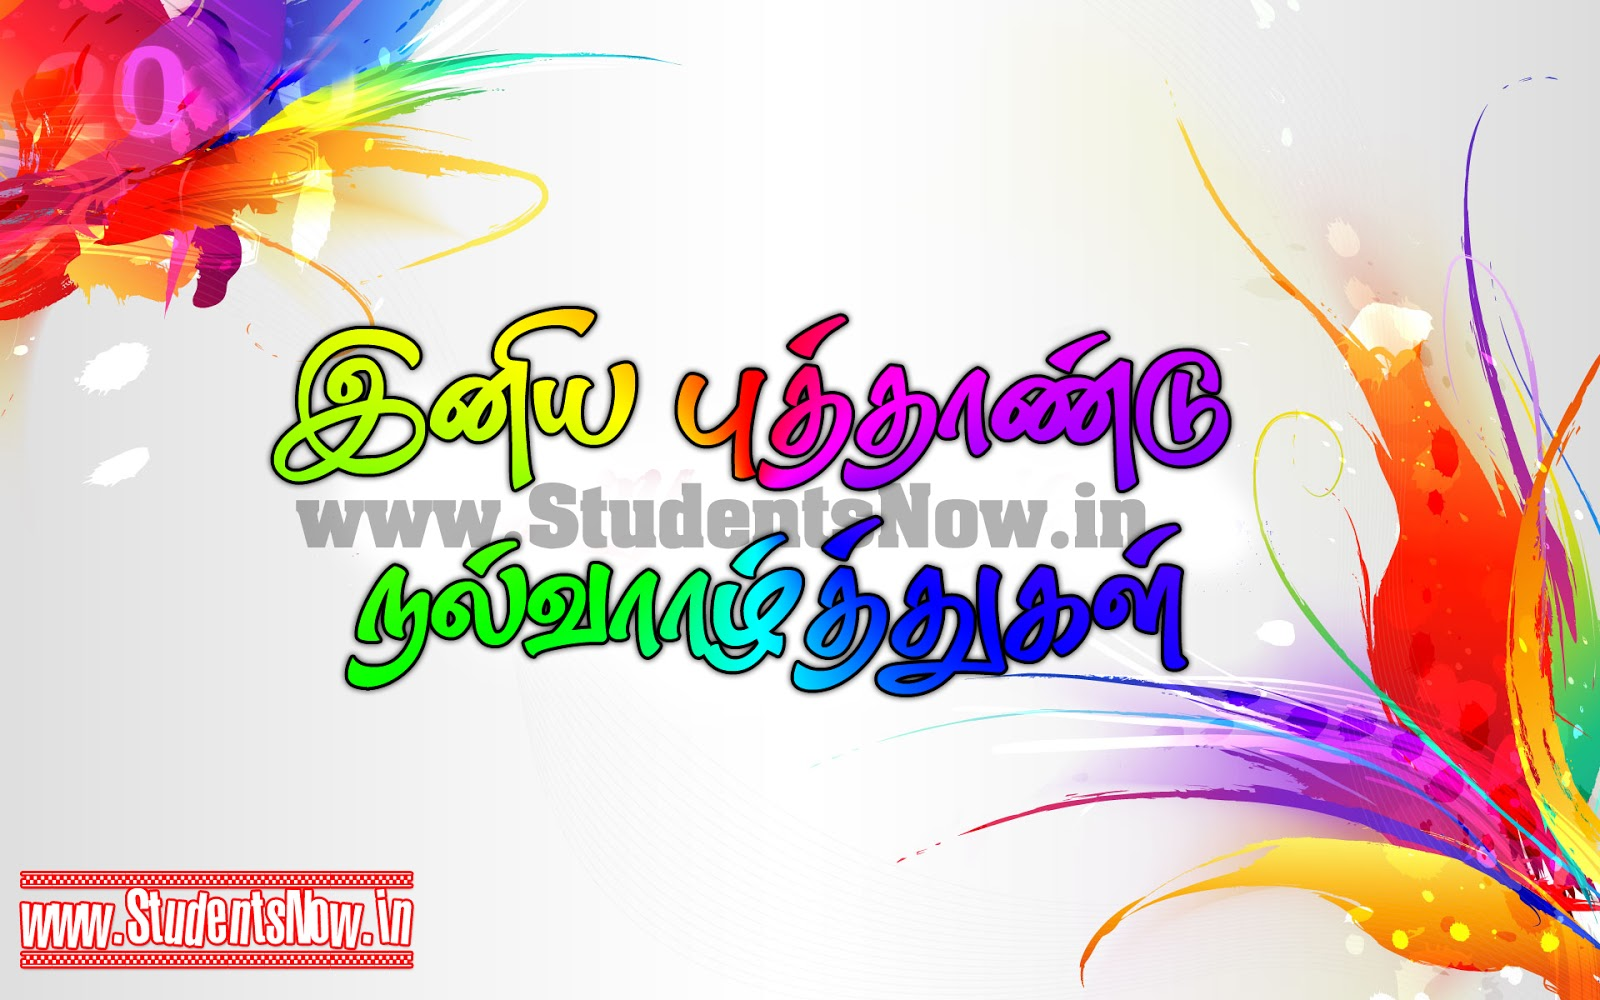 New+Year+Greetings+in+Tamil+_StudentsNow.in.2jpg